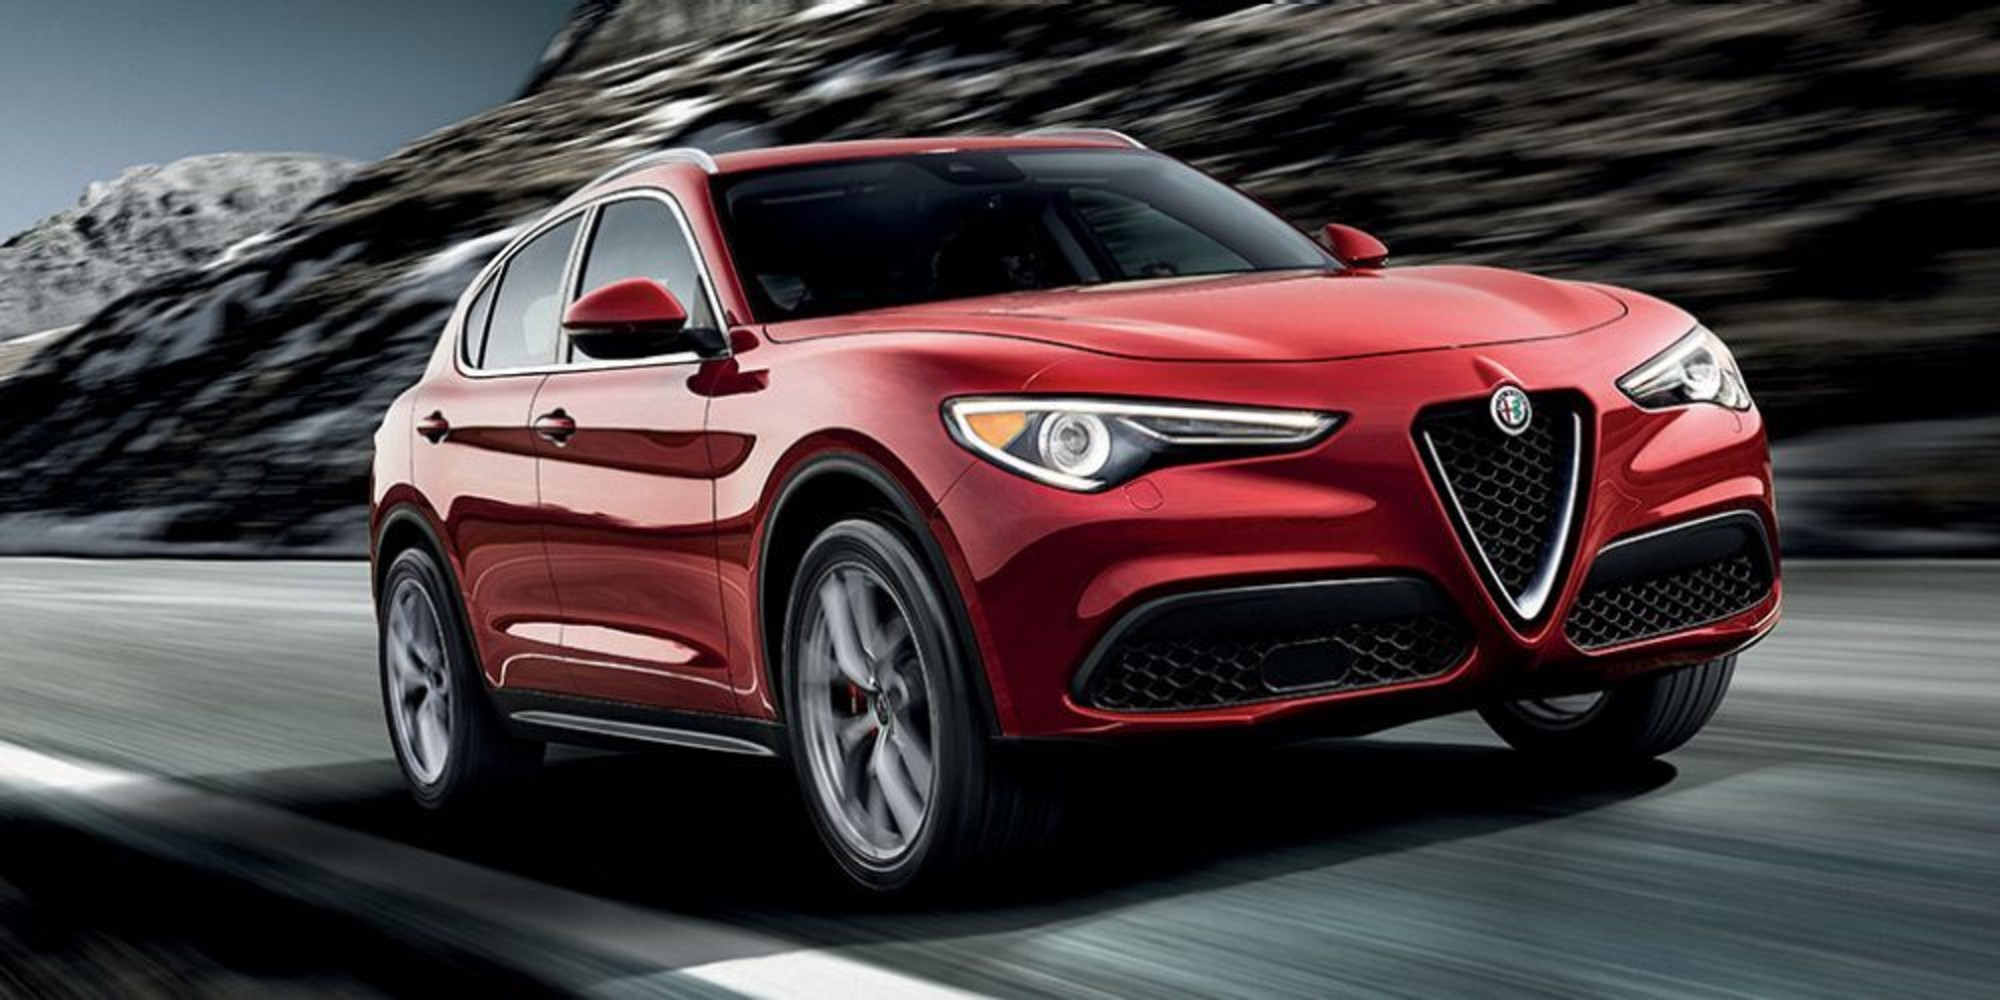 2018 Alfa Romeo Stelvio Running Shot Front Side View